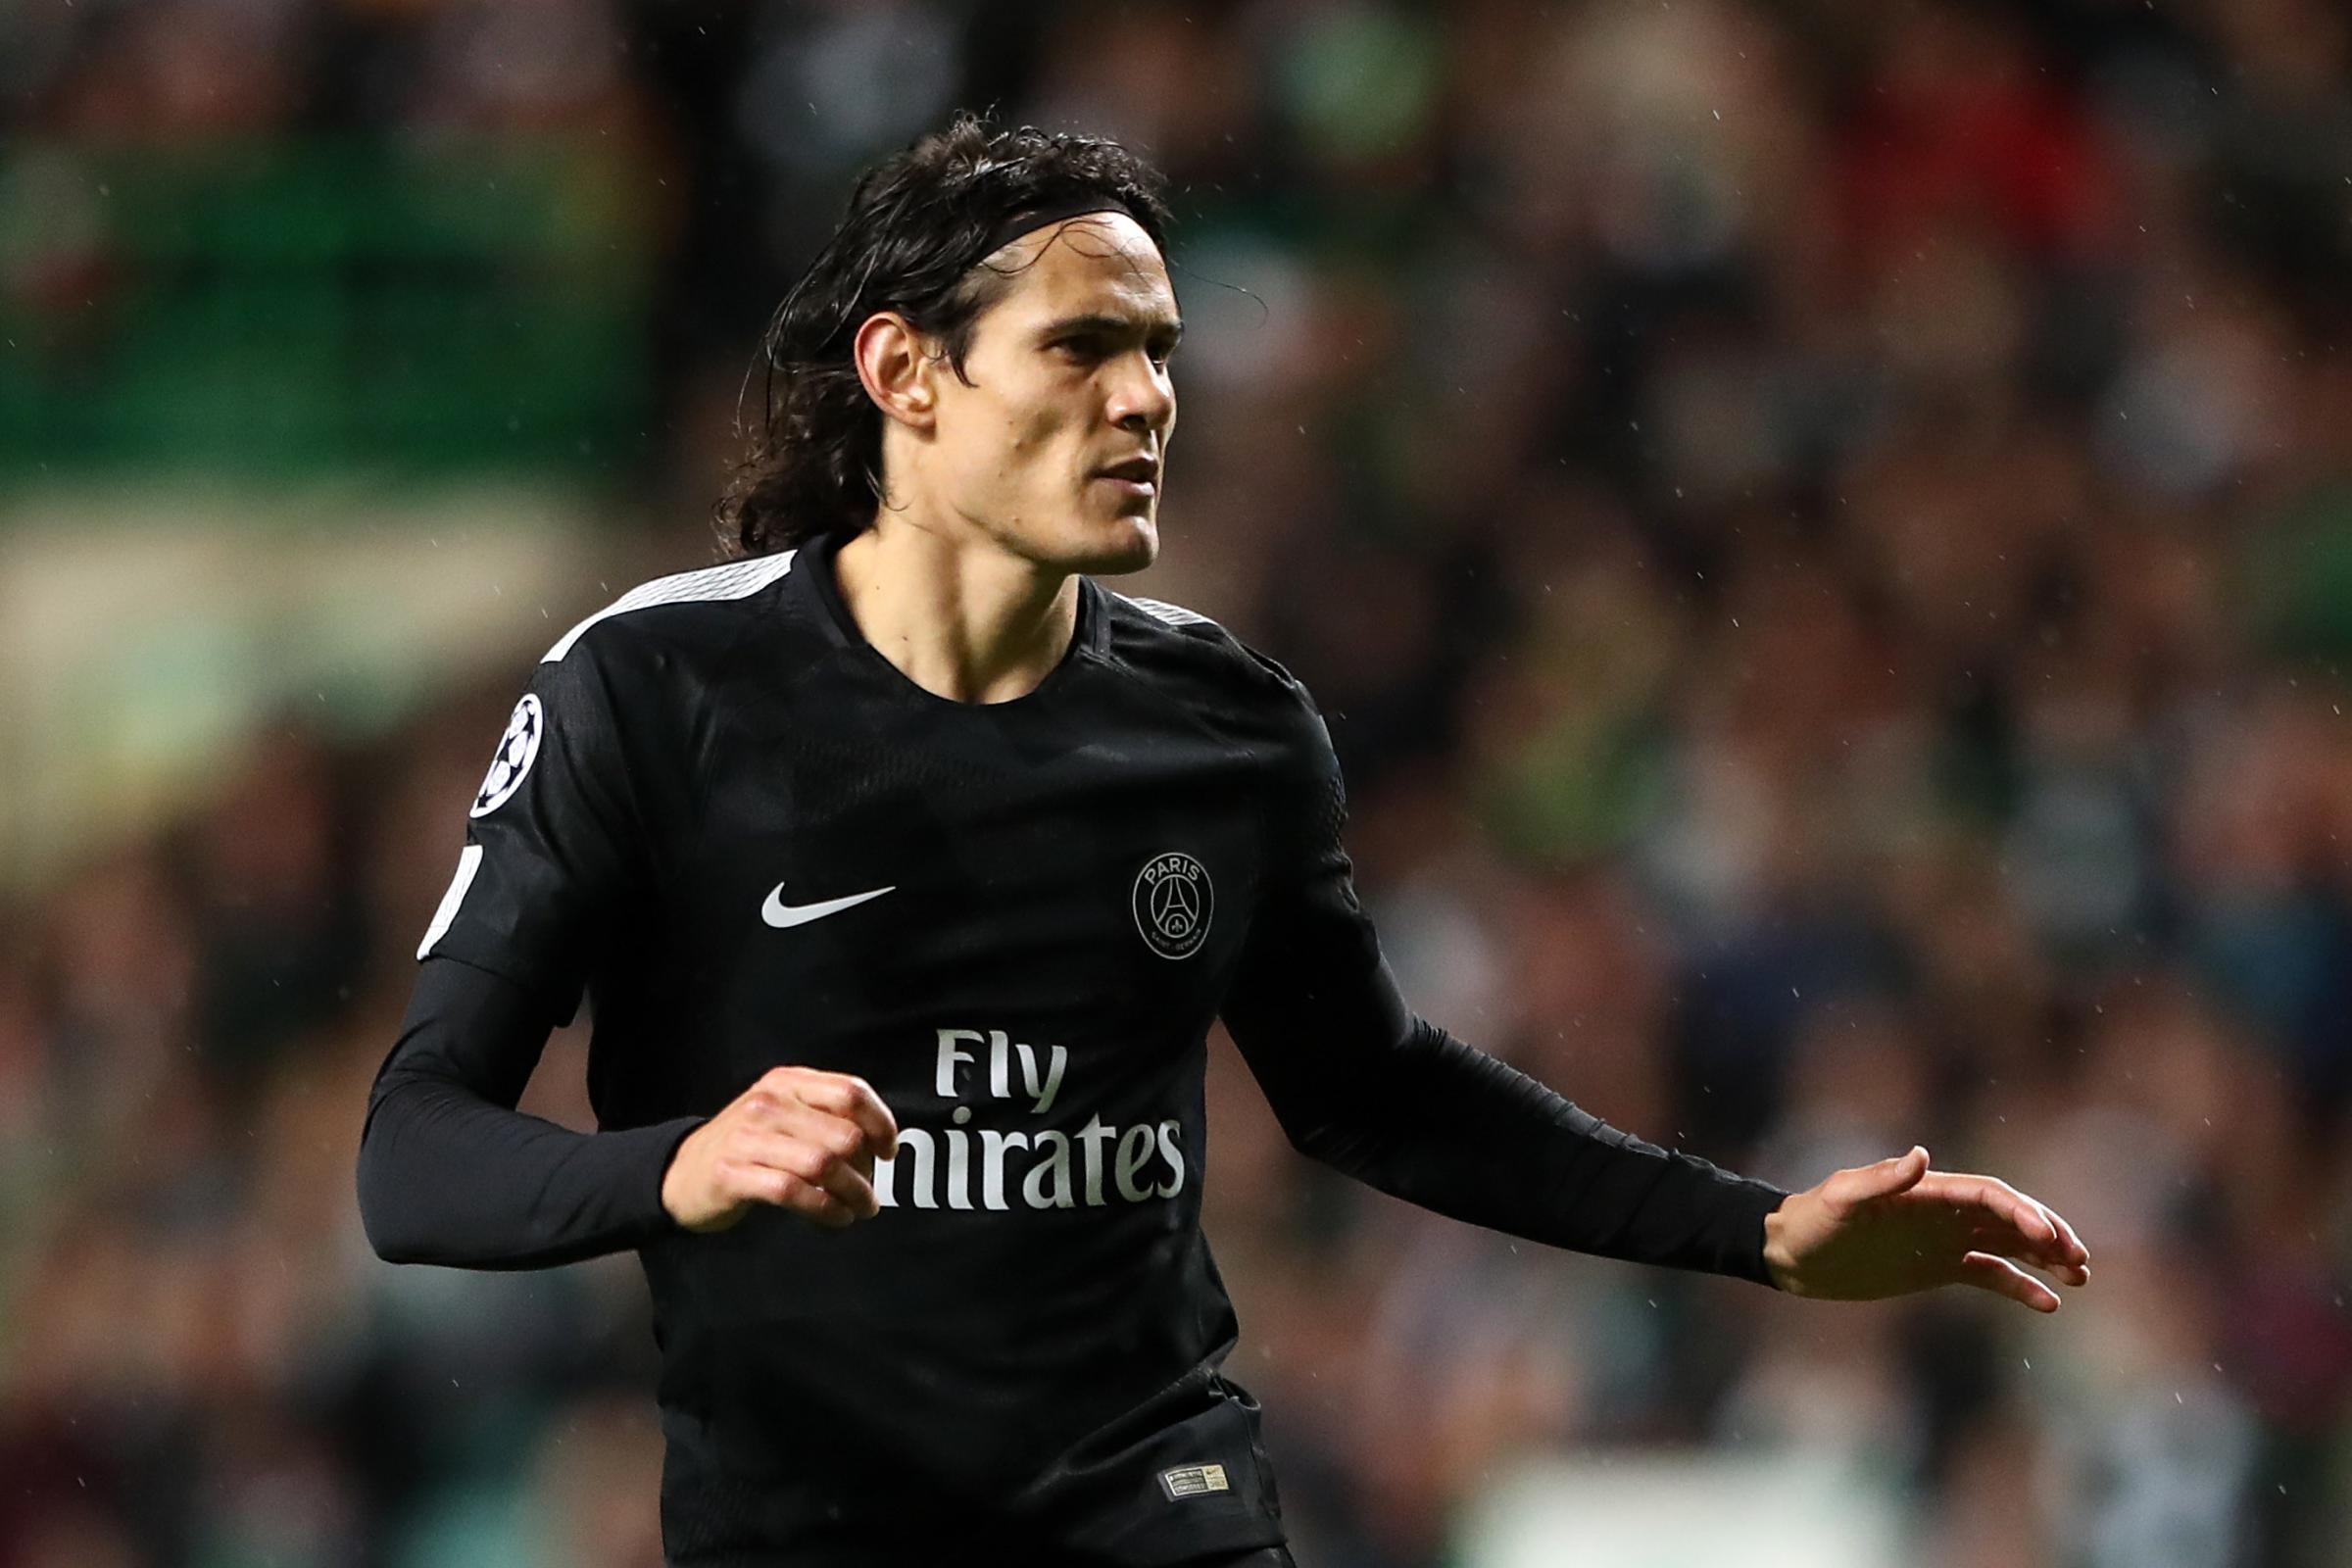 Edinson Cavani could miss the game against Manchester United